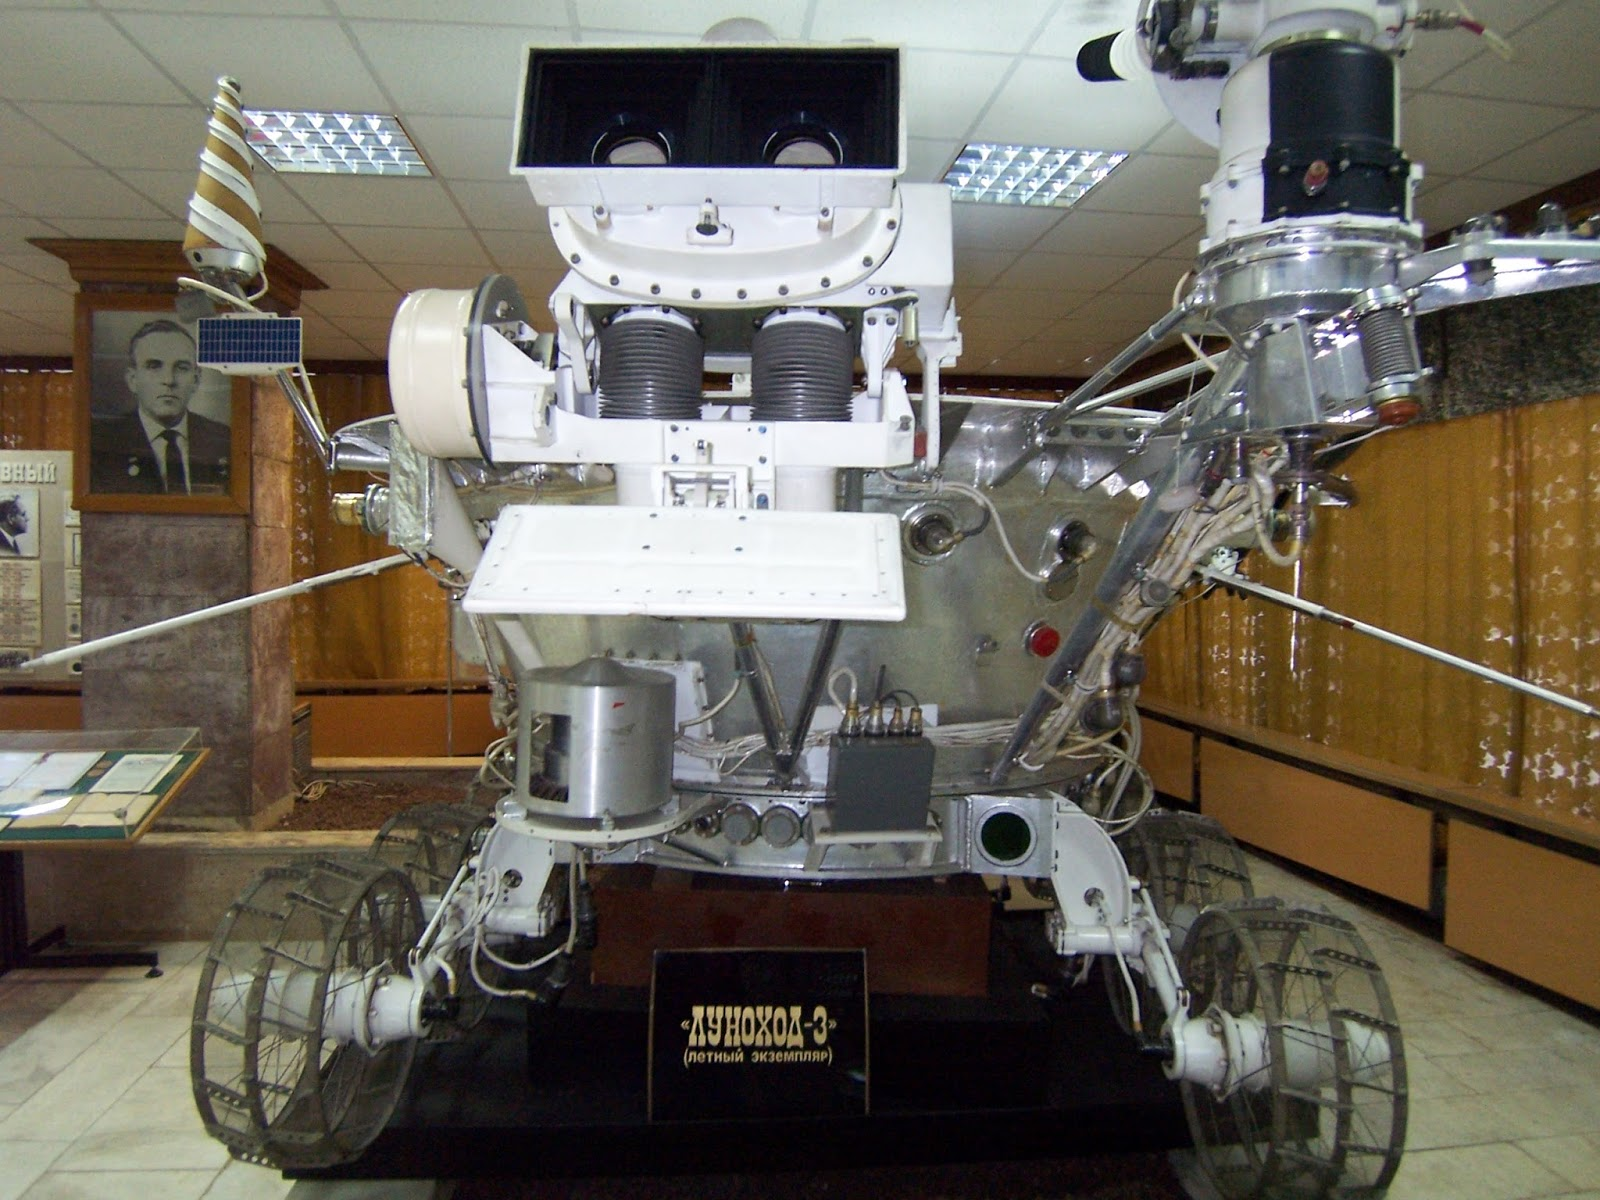 There be Robots here: Lunokhod the Russian Moon Rover